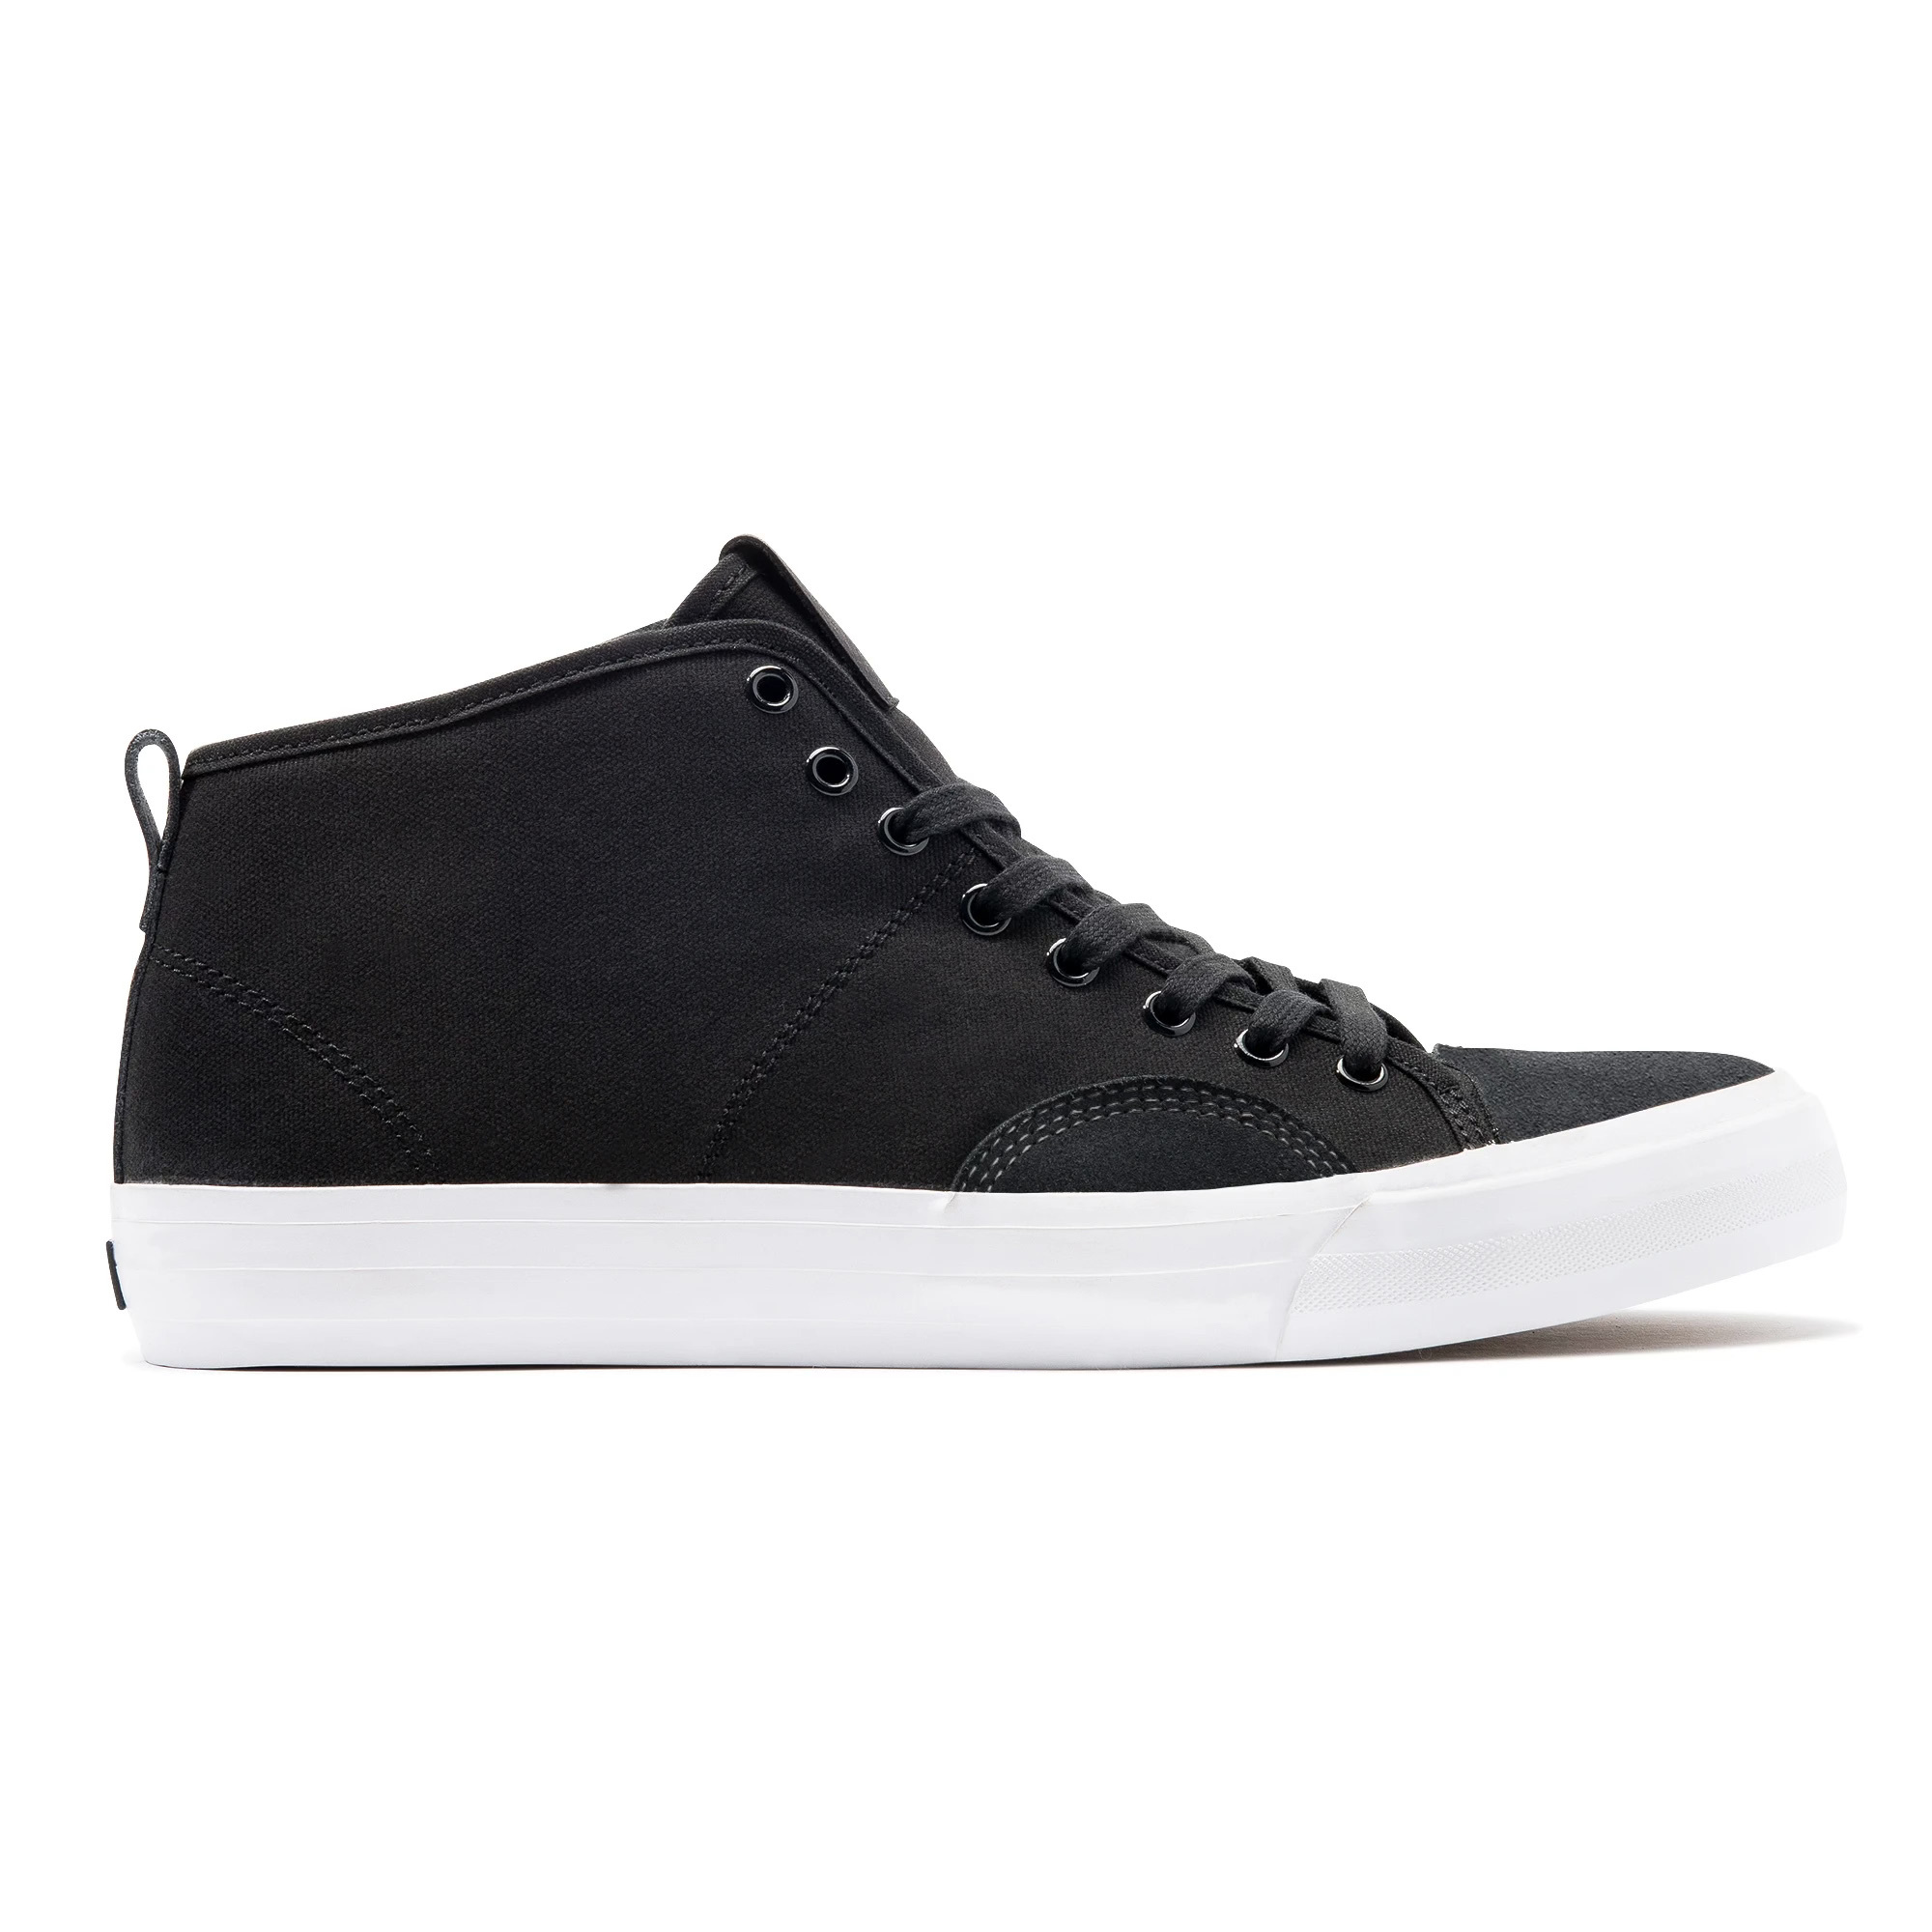 STATE SHOES 【HARLEM UP TOWN x BLACK/CANVAS】